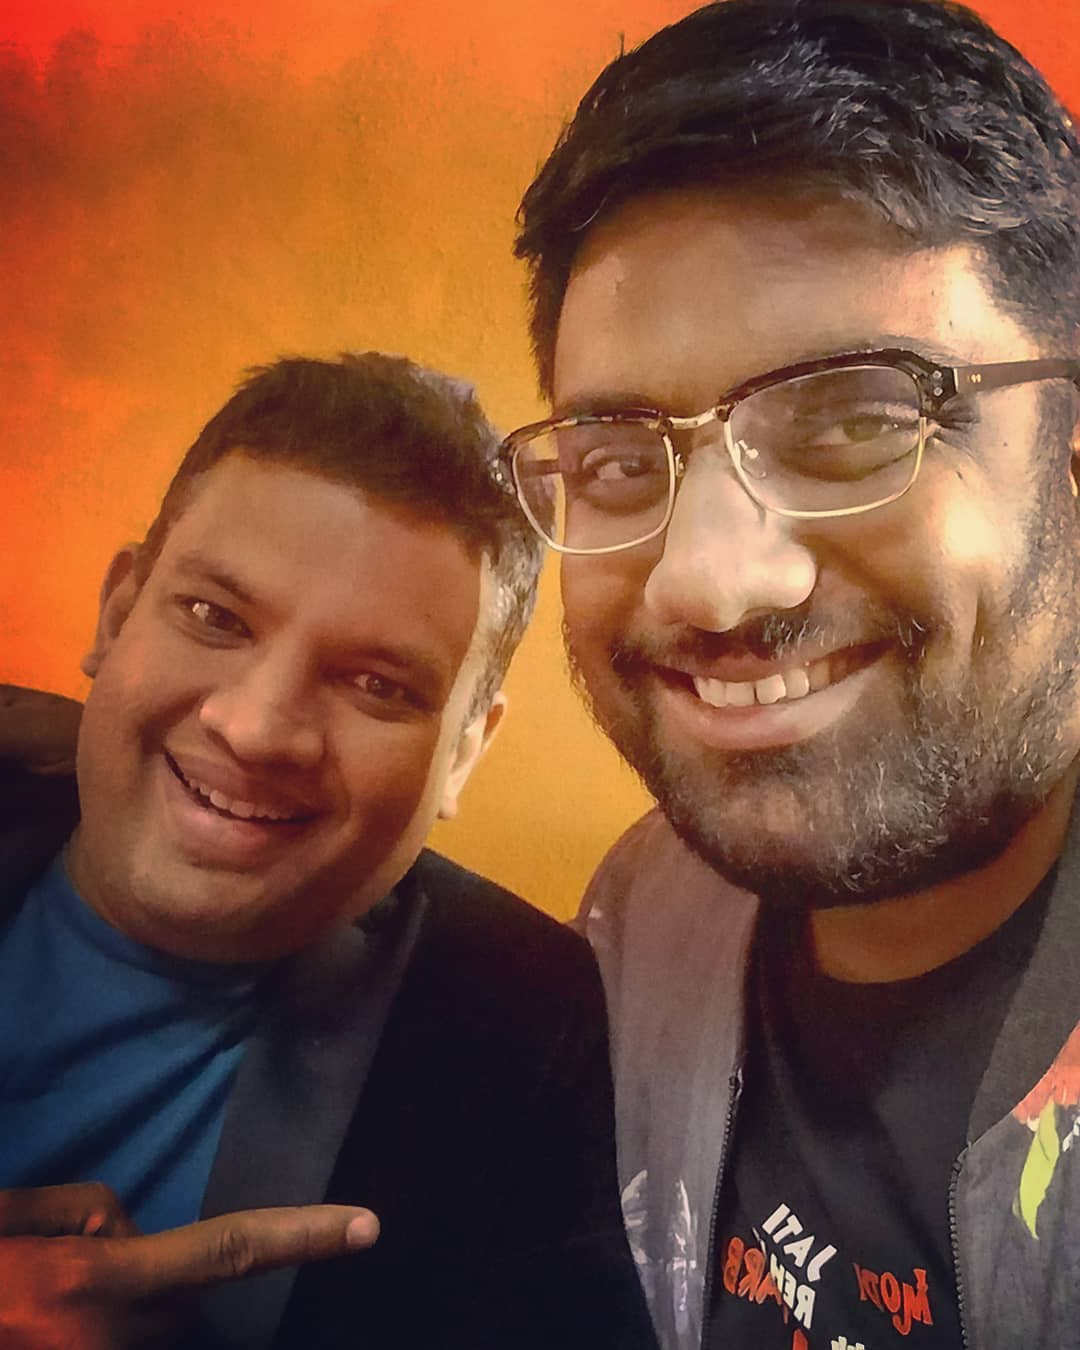 Mom had told me never to trust a 'Manjhri' aankh guy. Nevertheless I trusted one and made friendship of a lifetime. @bablu21 is one of the best promoters and humans that I have come across. He knows how to live life king size and his modesty is so evident. I hardly make friends at this age... But I couldn't resist finding a new friend in Chirag Parikh. Here's to many more shows, pegs, bets and stories. Thank you Chirag Parikh and Forum Parikh for the most memorable tour of my life.  #StarAllianceEntertainment #TcfAustralia #StandUpComedy #AustraliaTour #MusicalComedy #ImprovComedy